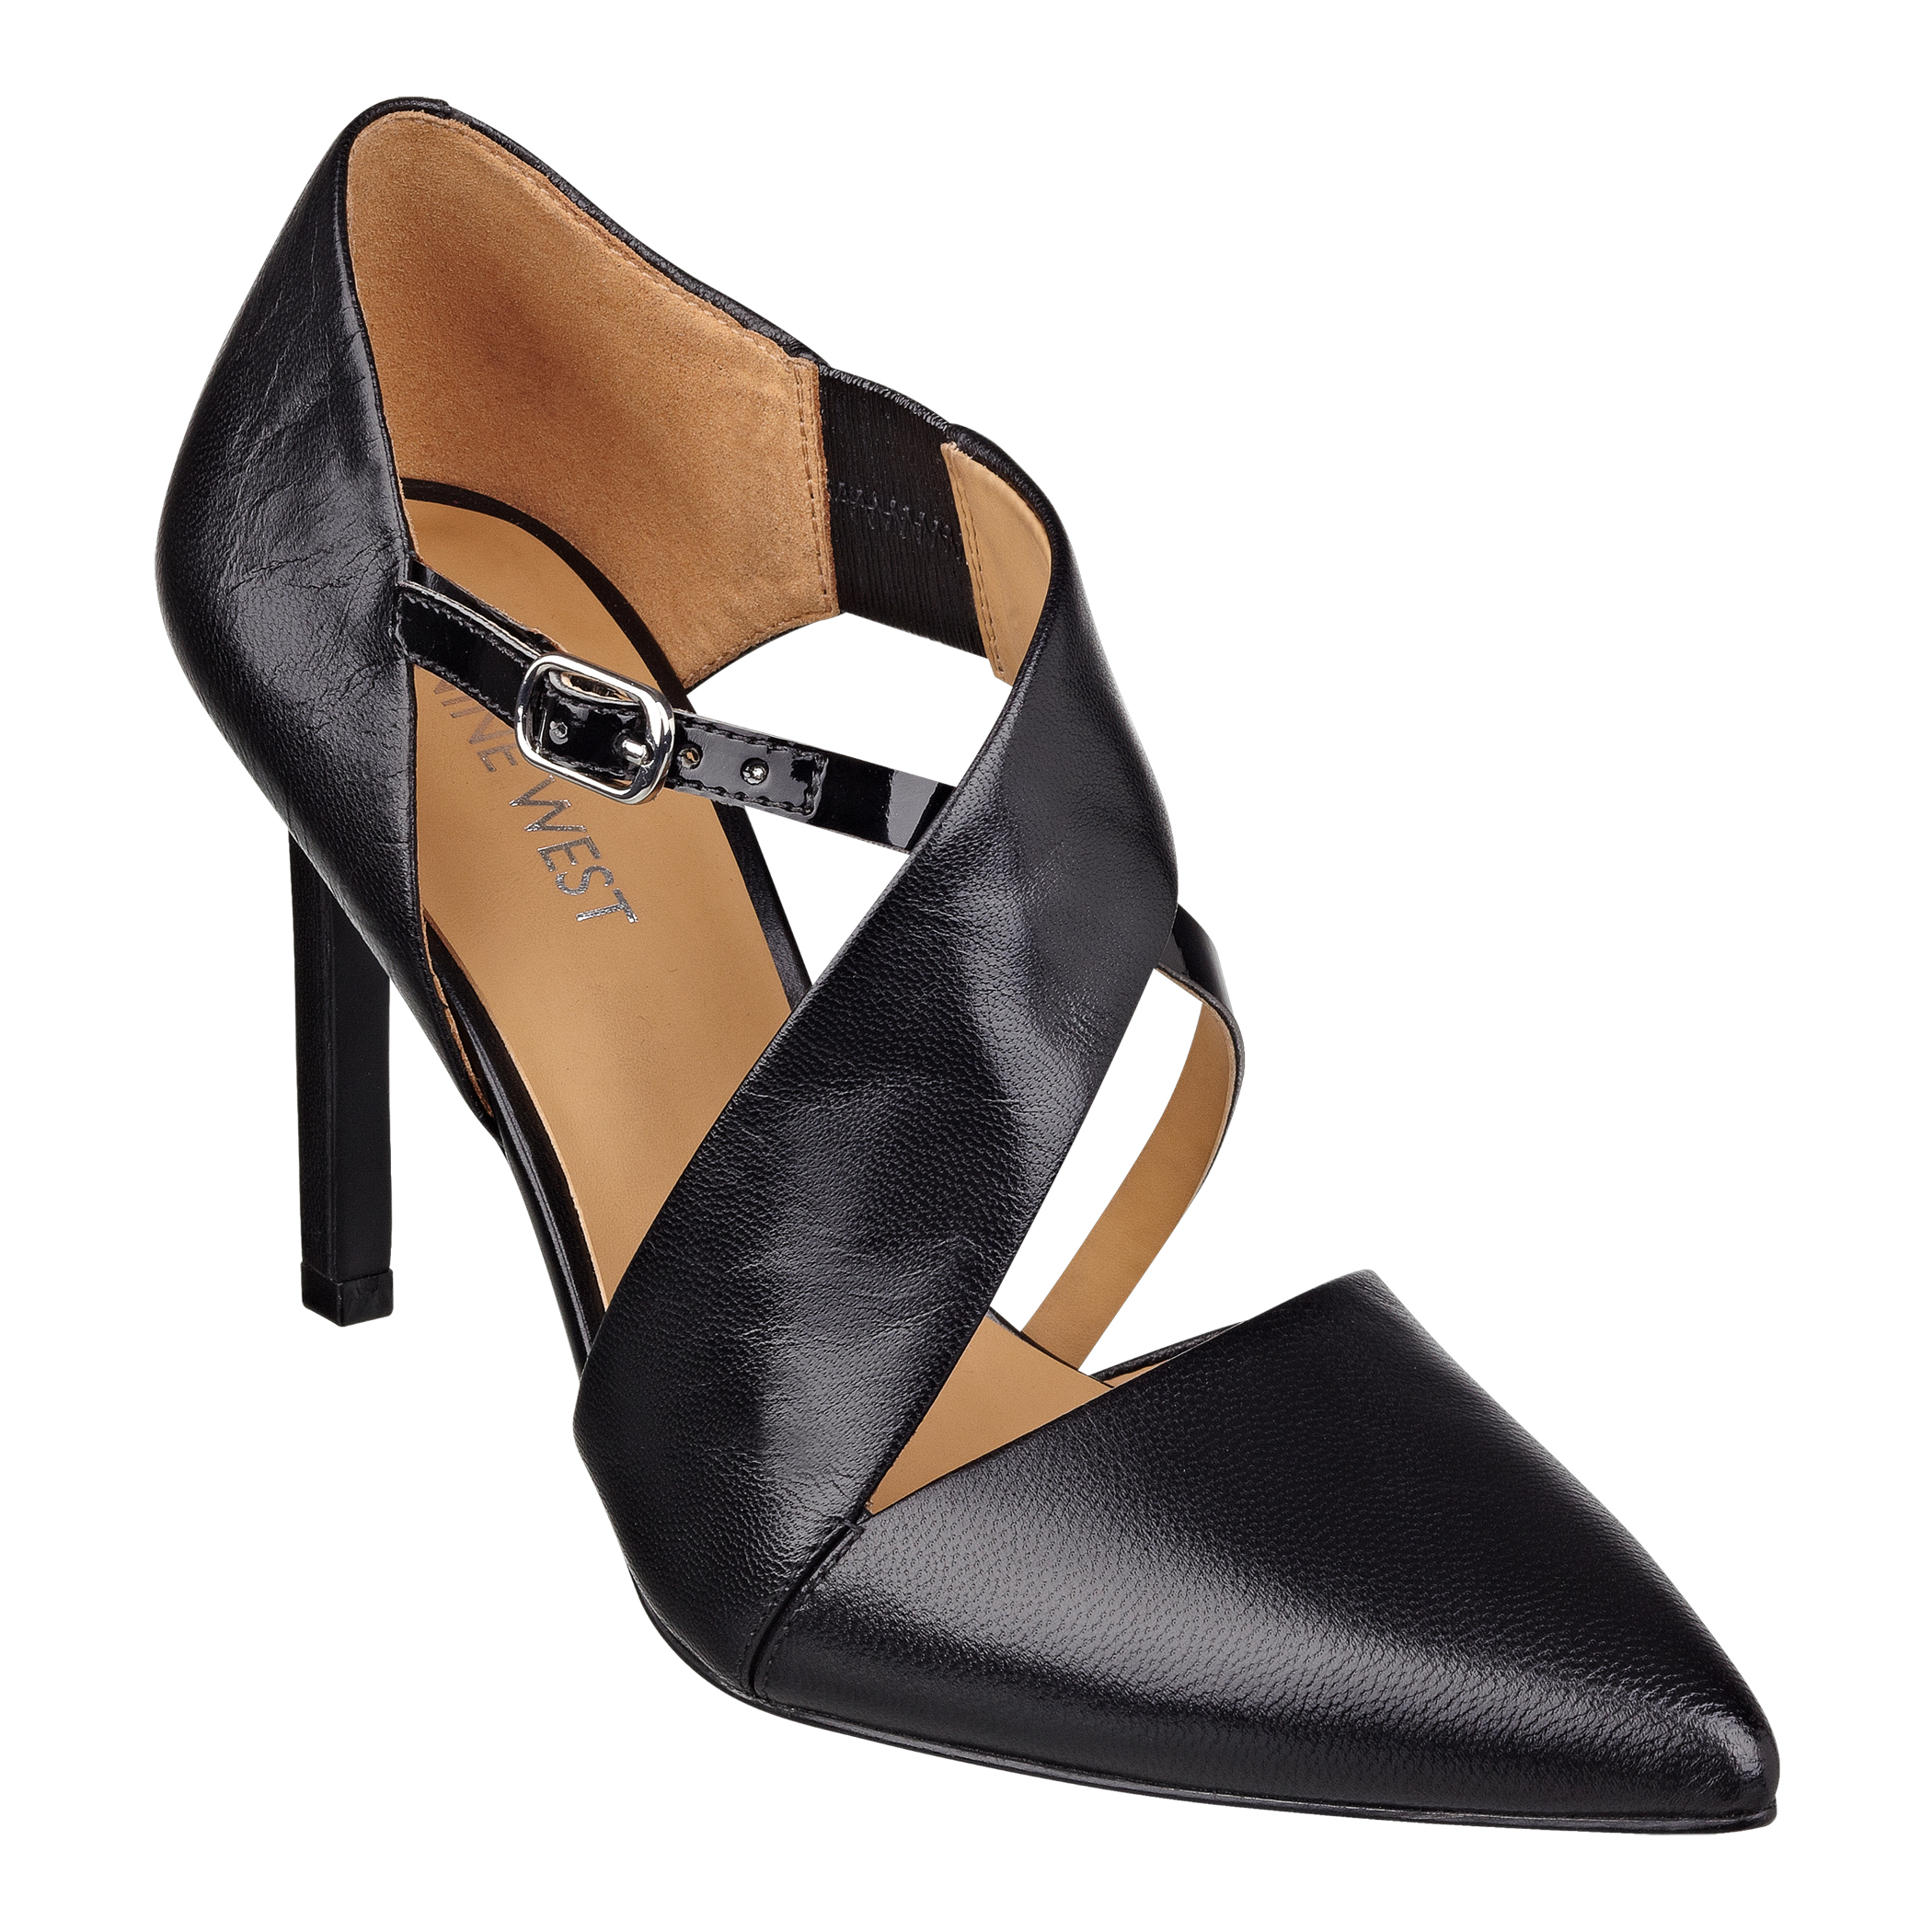 Latest Fashion of Stiletto & Heels Collection for women by Nine West (7)